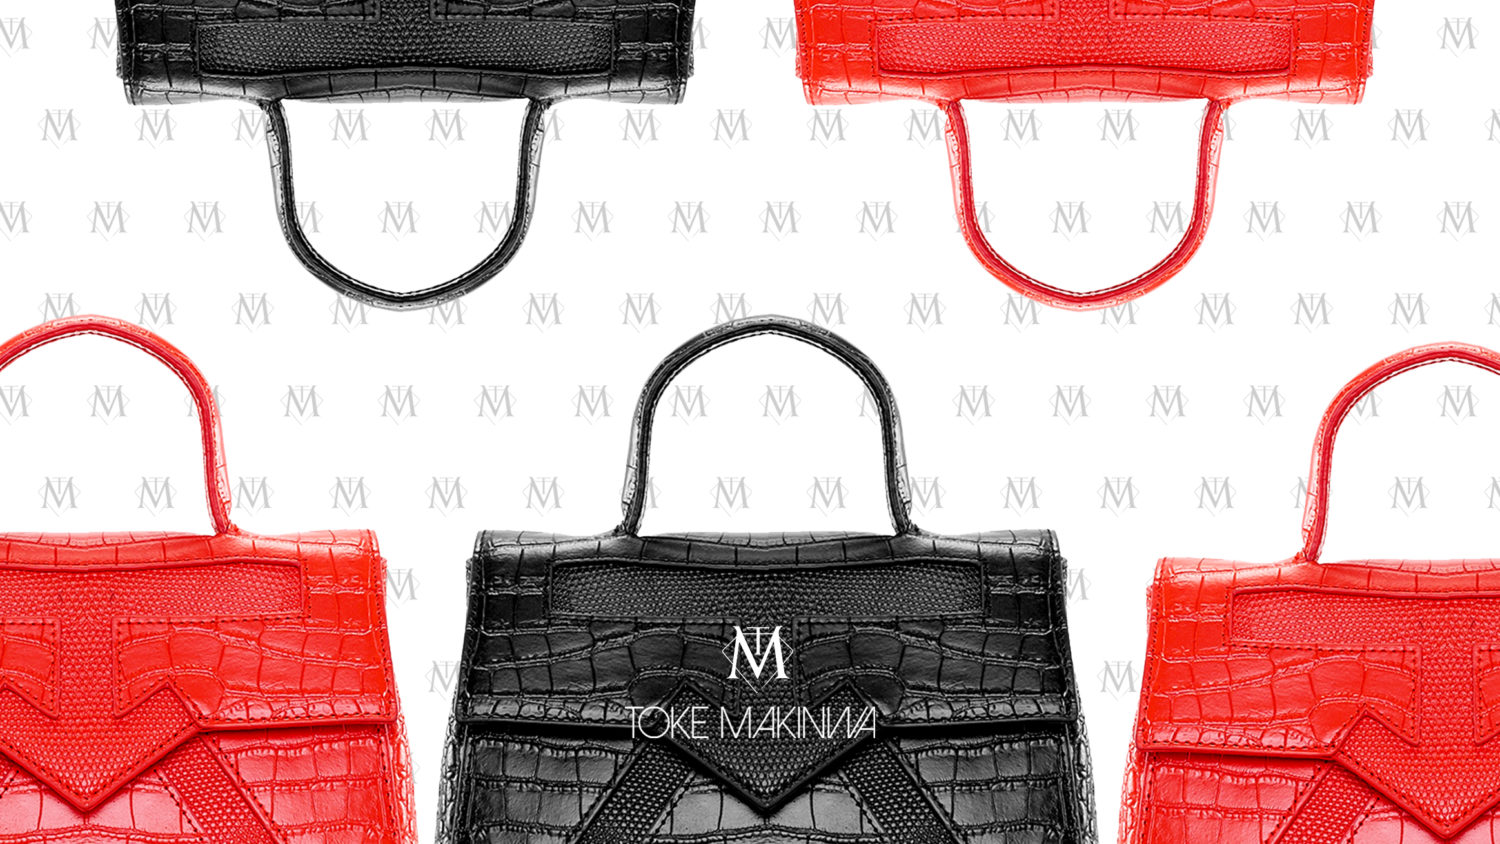 The TM Mini Handbag May Be The New Hero Piece For All Outfits!